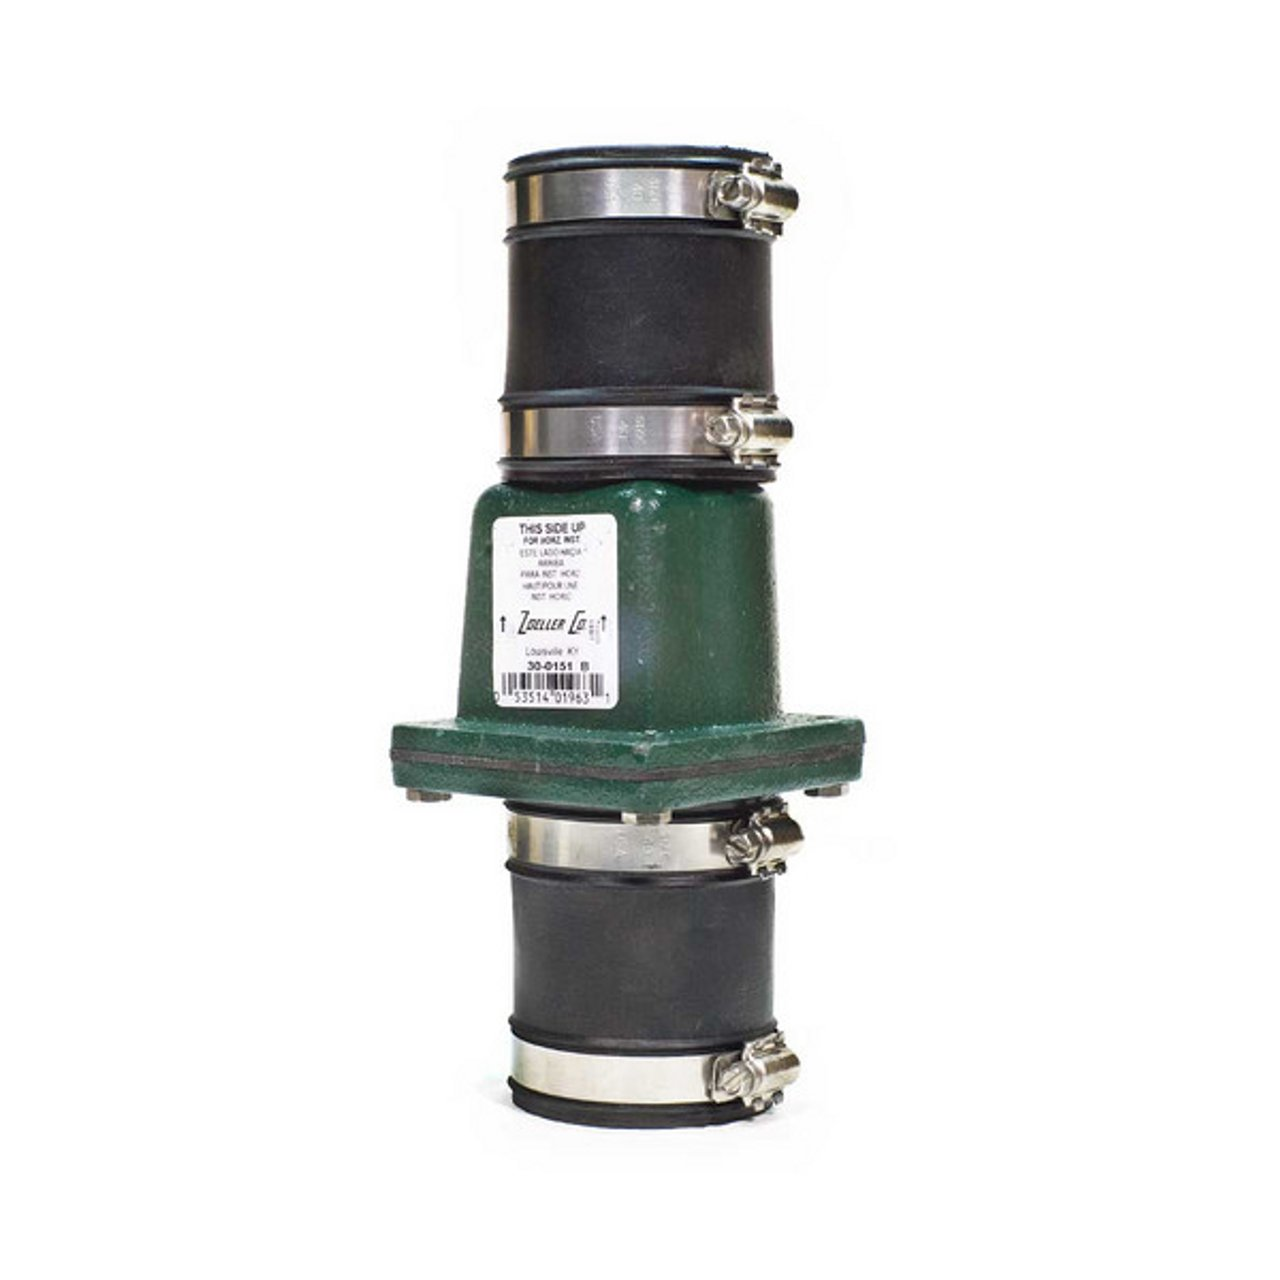 Zoeller 30-0151, 8.25 x 12.00 x 11.00 inches by Zoeller